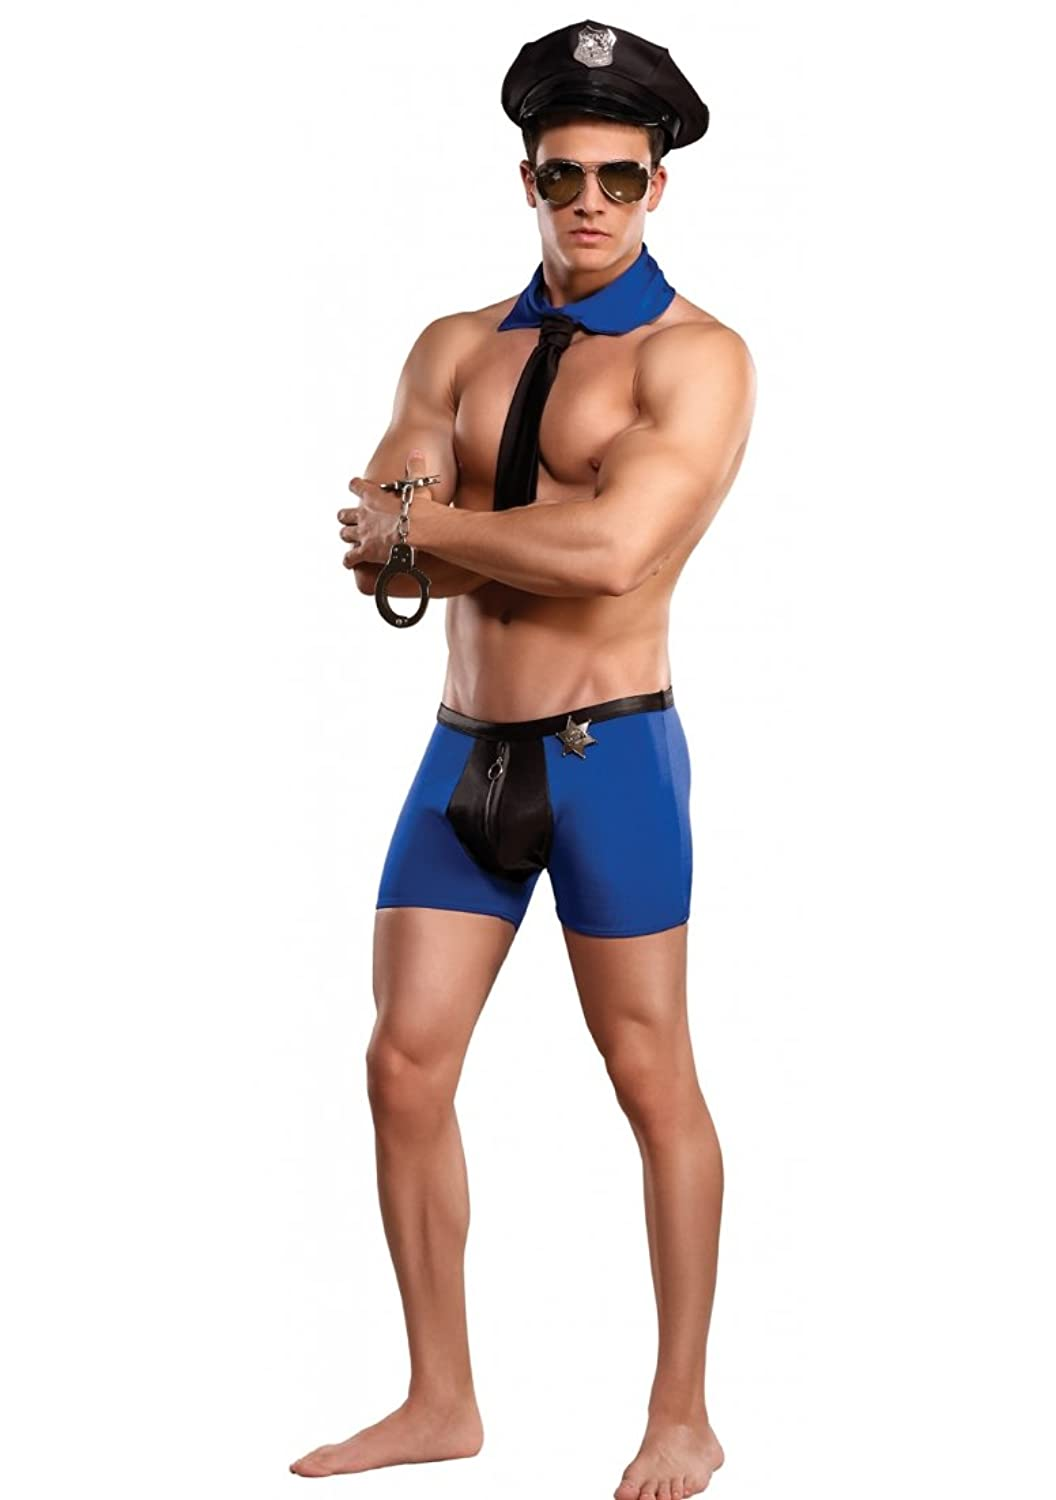 Amazon.com: Officer Frisk-em Mens Bedroom Costumes: Adult Exotic ...